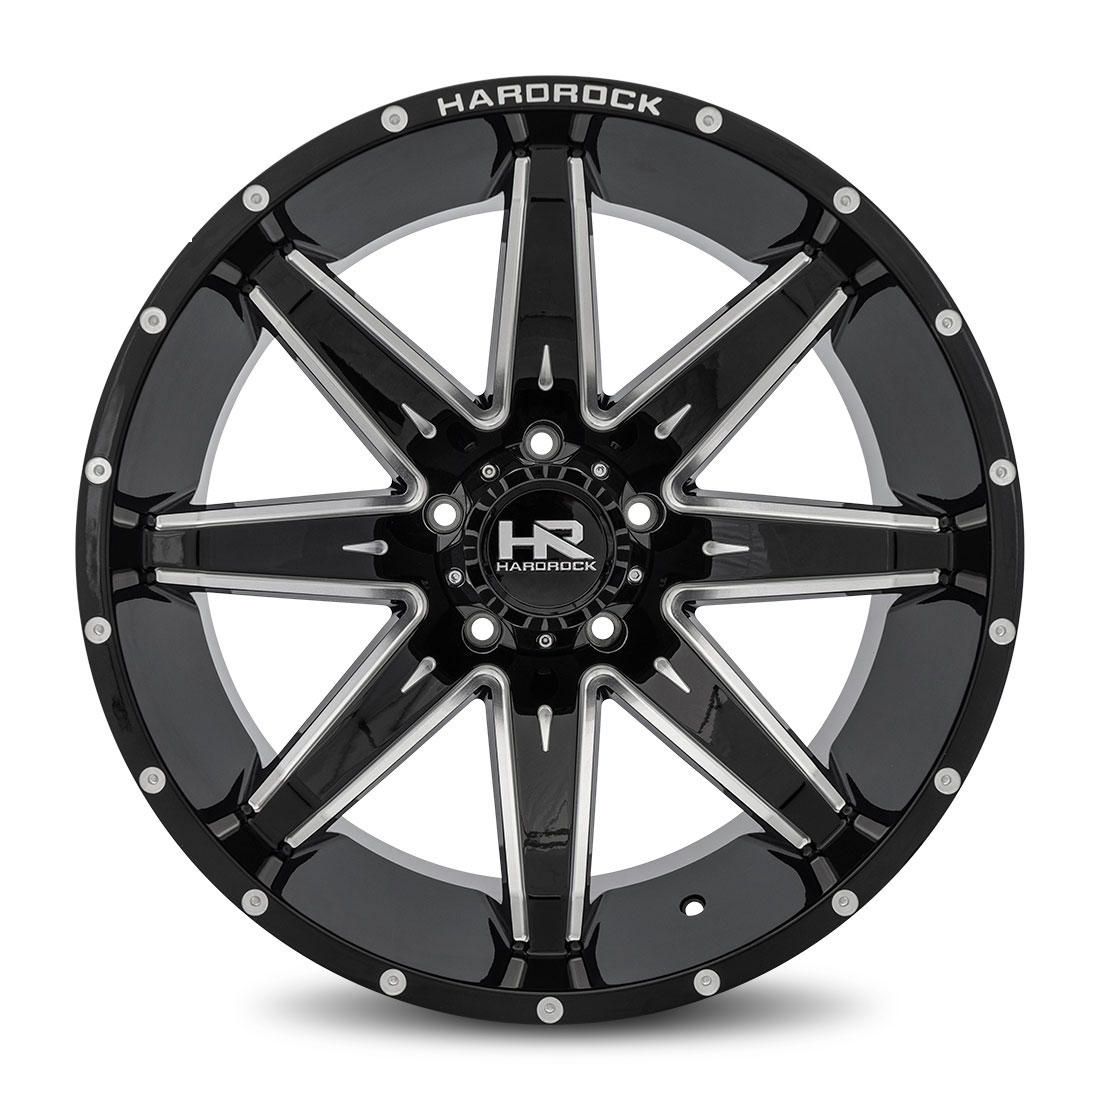 Hardrock Offroad Wheels H502 Painkiller-Xposed - Gloss Black Milled - 22x12